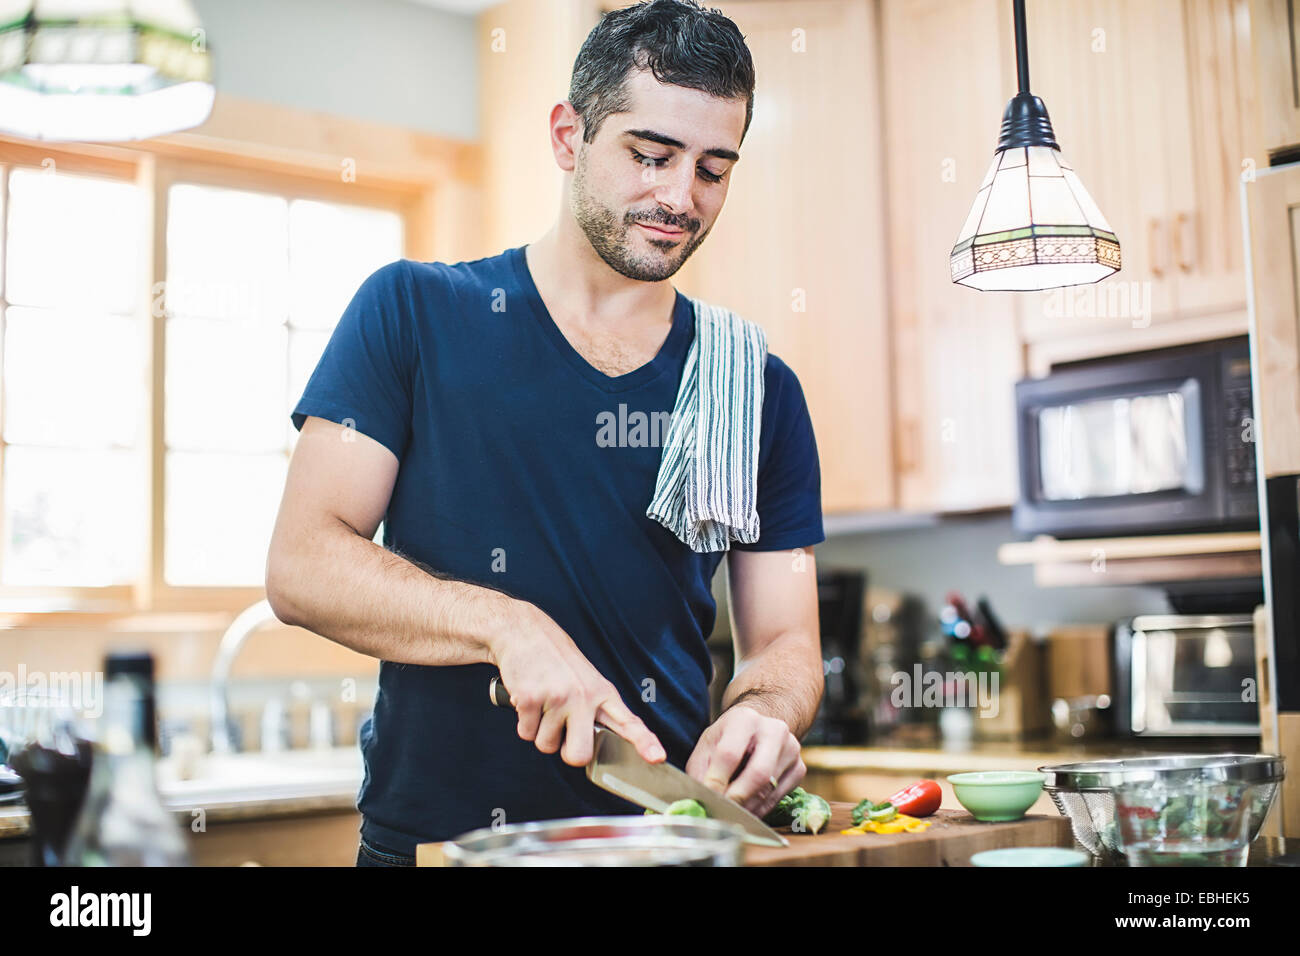 Man preparing food in kitchen Photo Stock